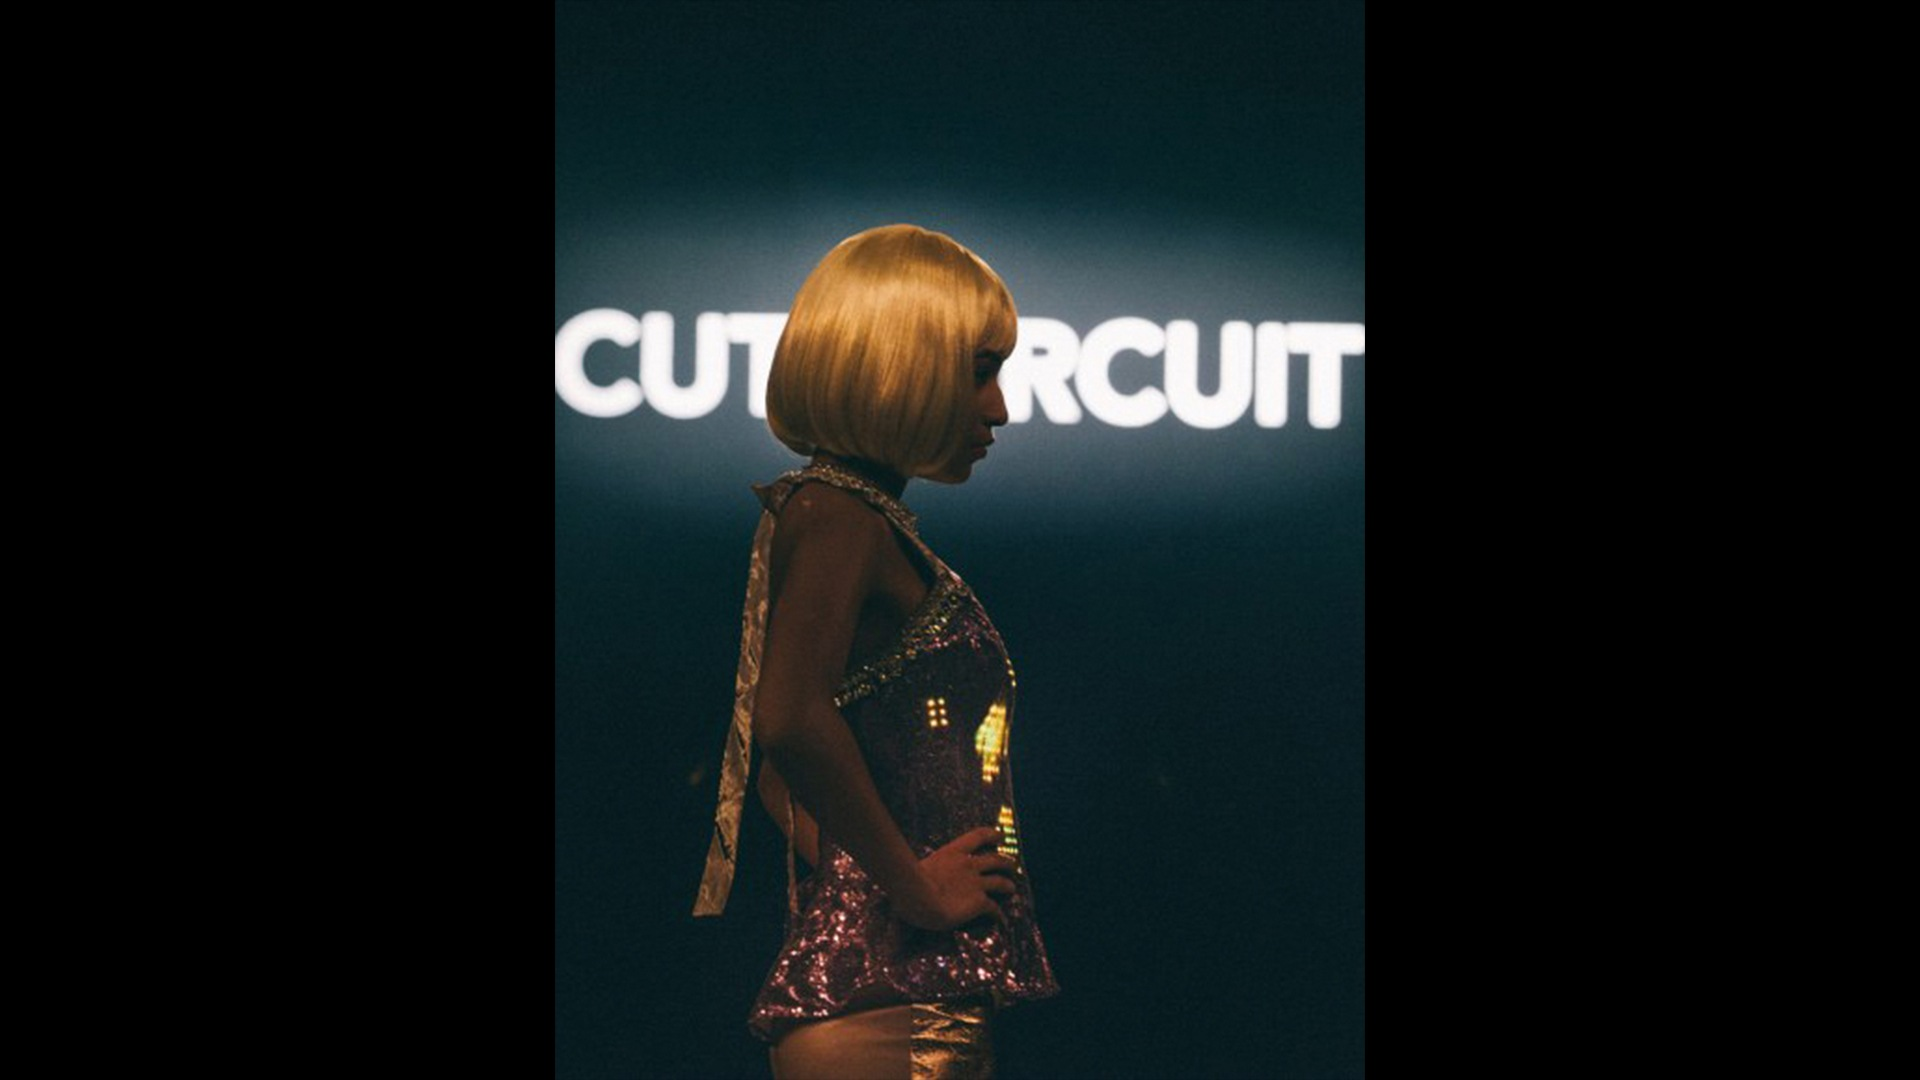 "In 2014, CuteCircuit won new admirers at international fashion weeks with its very own runway collection. For the models that were booked, it was just one gig among many at the shows, and they only discovered shortly before going on that they themselves could control the illumination of their outfits while out on the runway, using a smartphone app. ""We simply pressed cell phones into their hands and sent them out there,"" remembers Francesca Rosella."